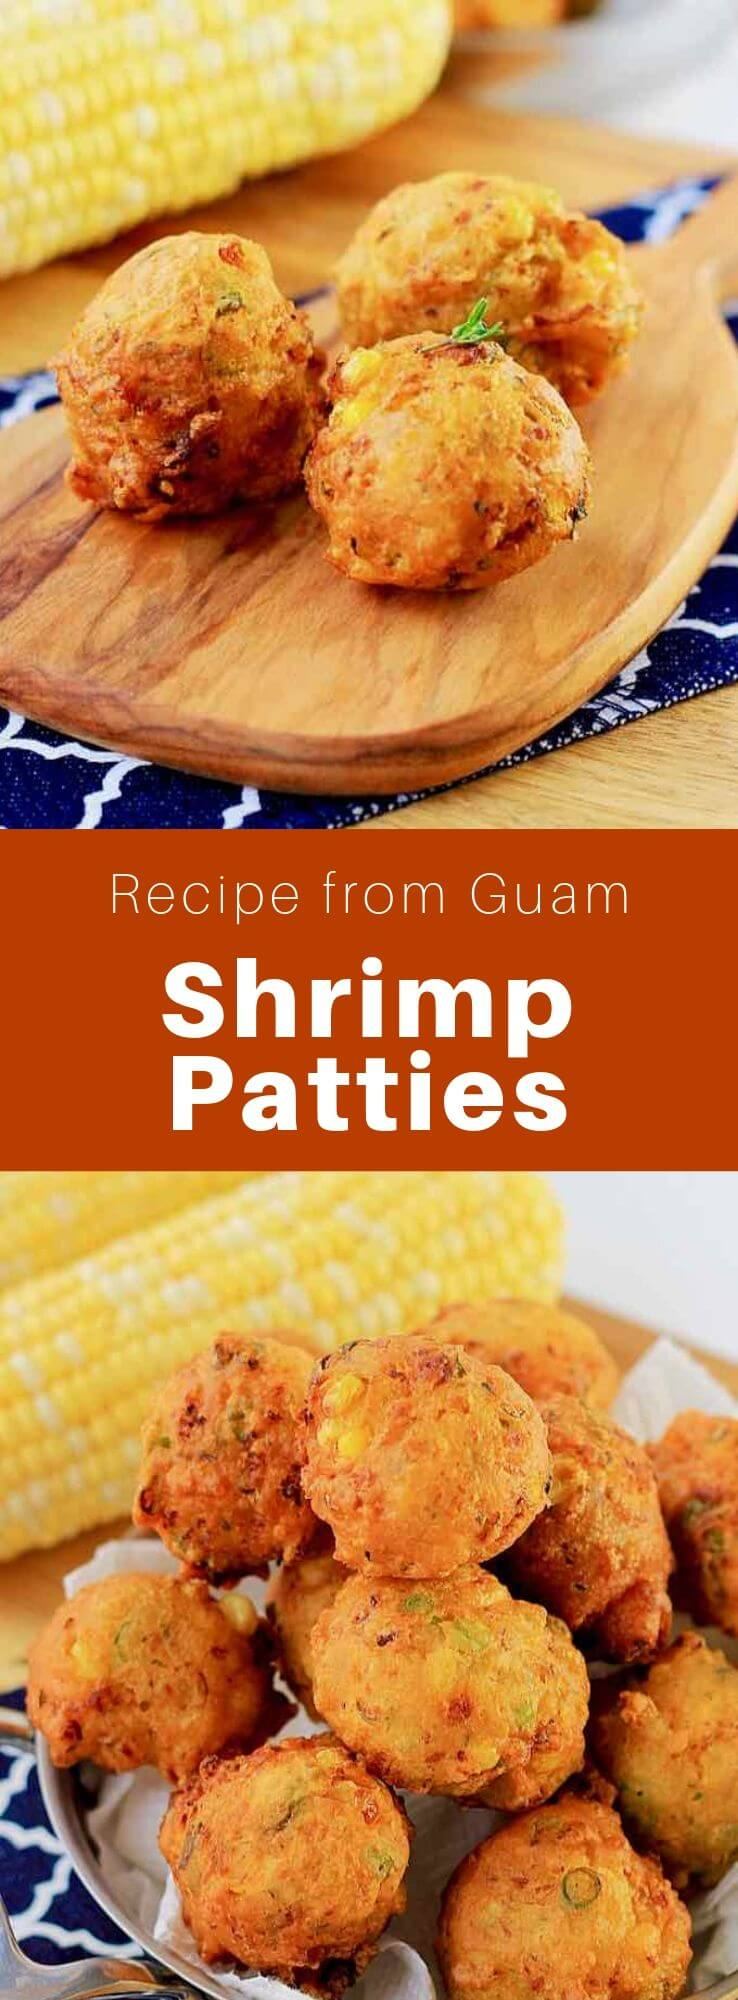 Buñelos uhang are delicious fried shrimp patties prepared with green beans, corn and peas, that are popular on the island of Guam. #Guam #GuamFood #GuamRecipe #GuamCuisine #Chamorro #ChamorroCuisine #ChamorroFood #ChamorroRecipe #WorldCuisine #196flavors